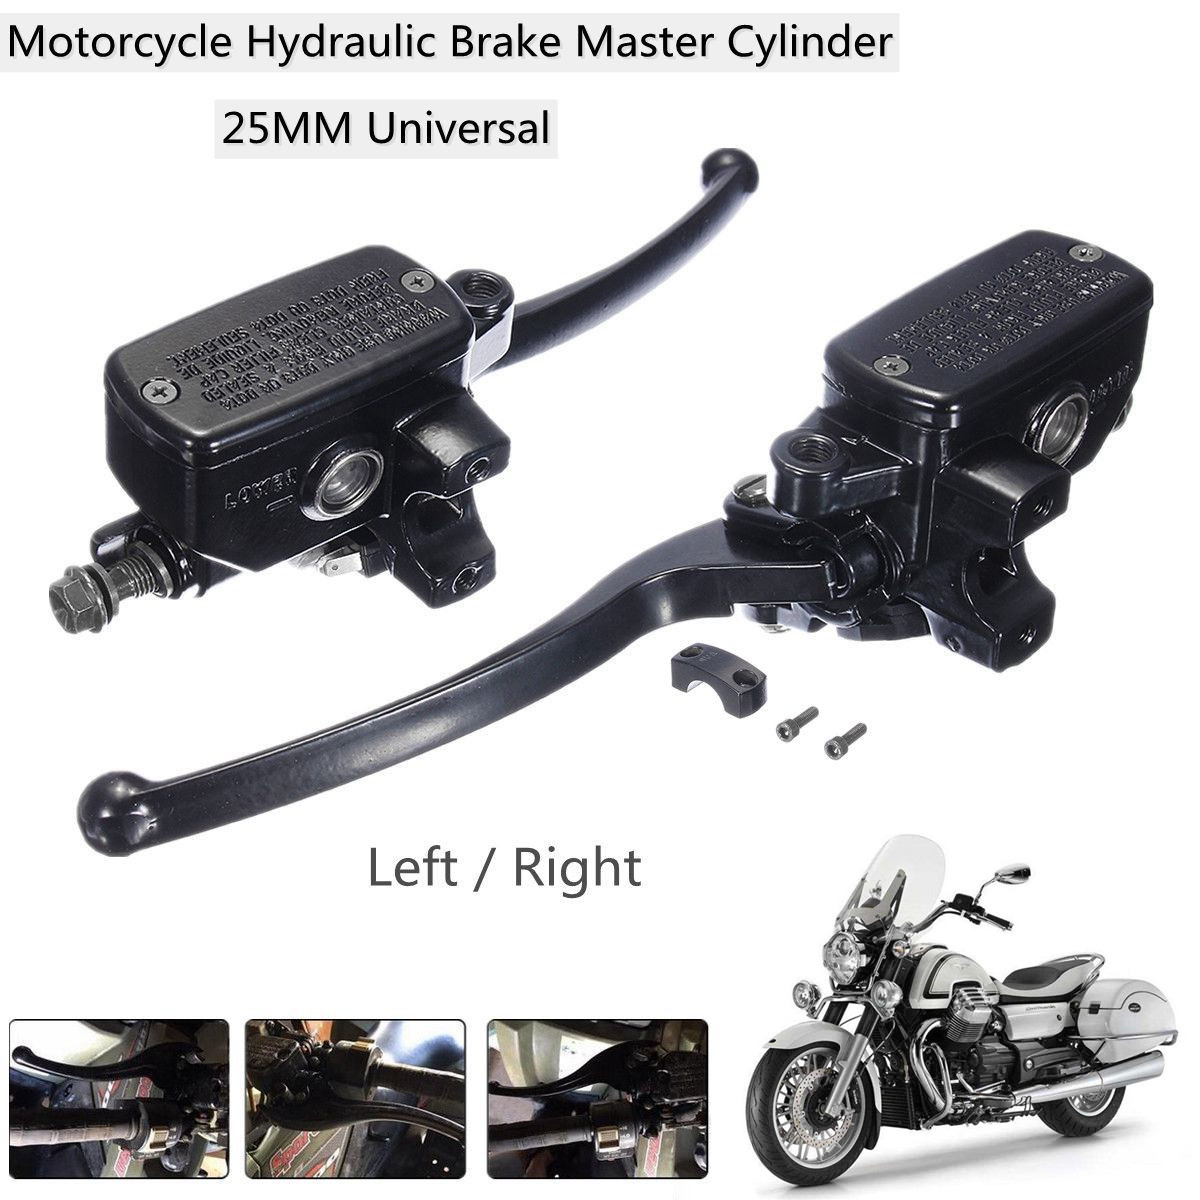 1 Inch 25MM Left Right Universal Motorcycle Brake Master Motorbike Cylinder Hydraulic Pump Clutch Lever universal 14mm 16mm black 7 8 22mm motorcycle front brake clutch master cylinder motorbike hydraulic pump motorbike brake lever